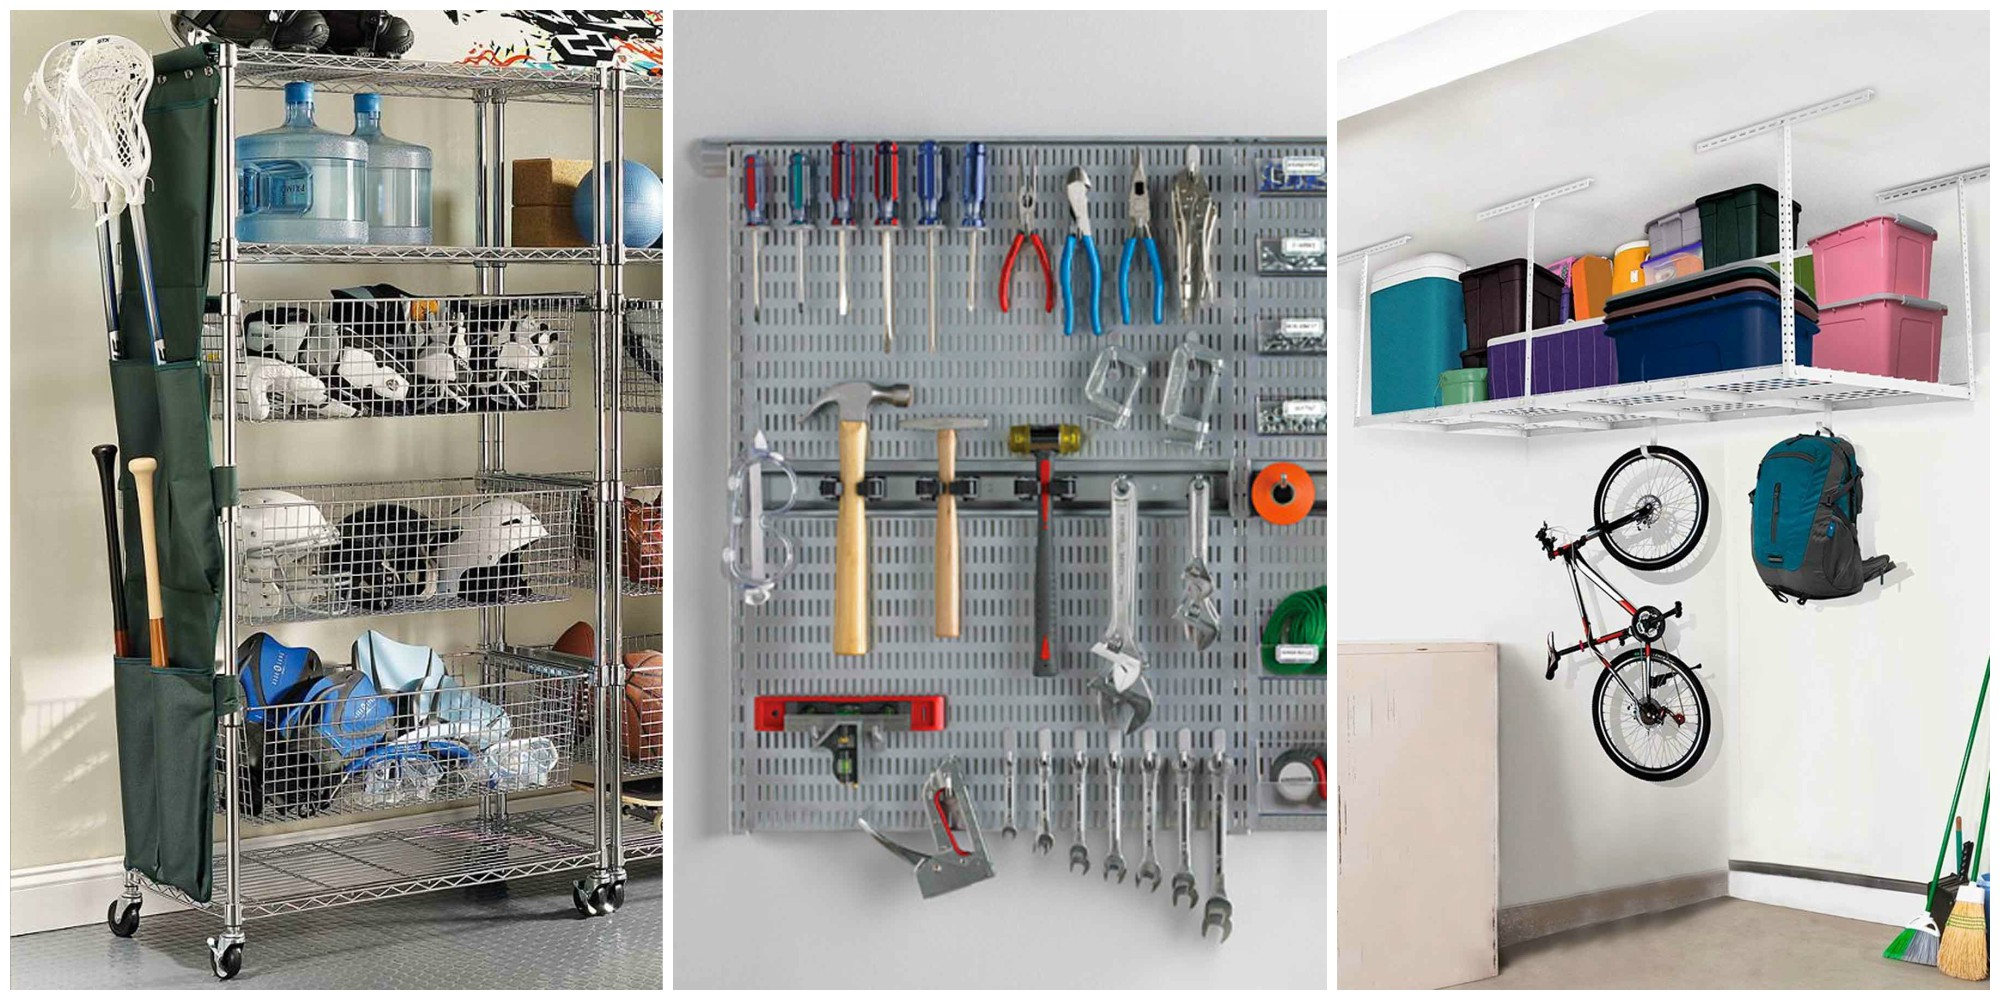 https www.containerstore.com tip roomgarage garage-shelving-ideas - 24 Garage Organization Ideas Storage Solutions and Tips